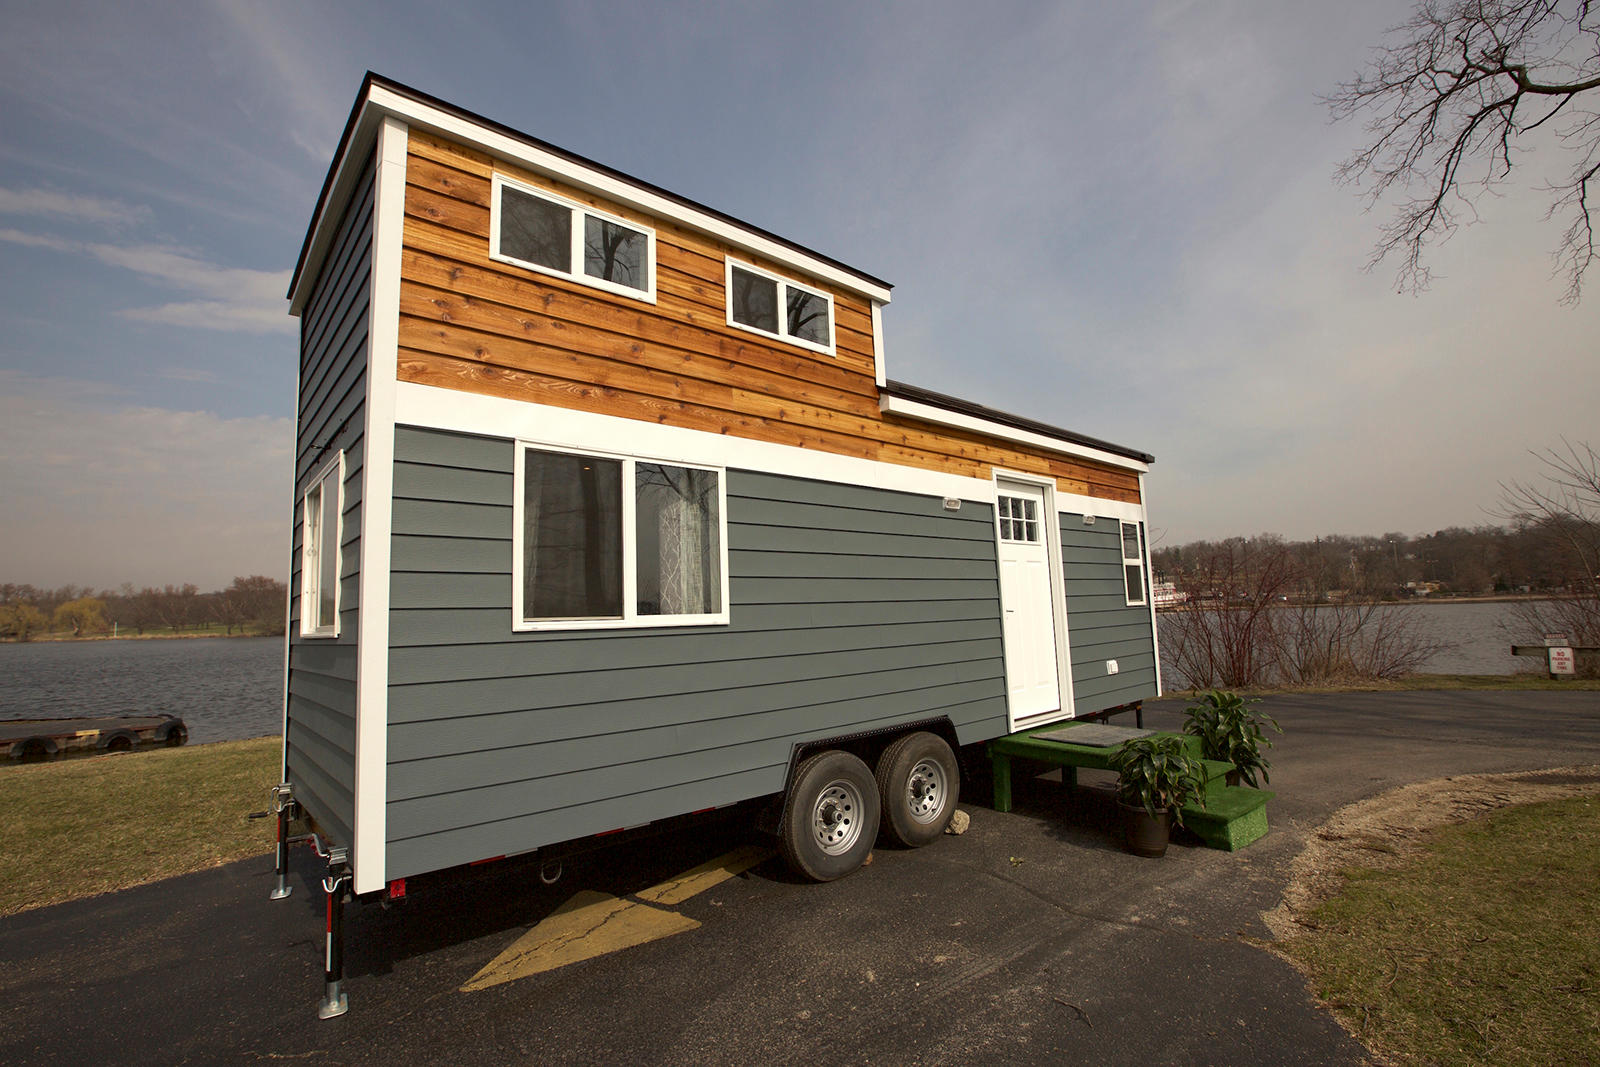 Titan tiny homes coupons near me in south elgin 8coupons for Small house builders near me